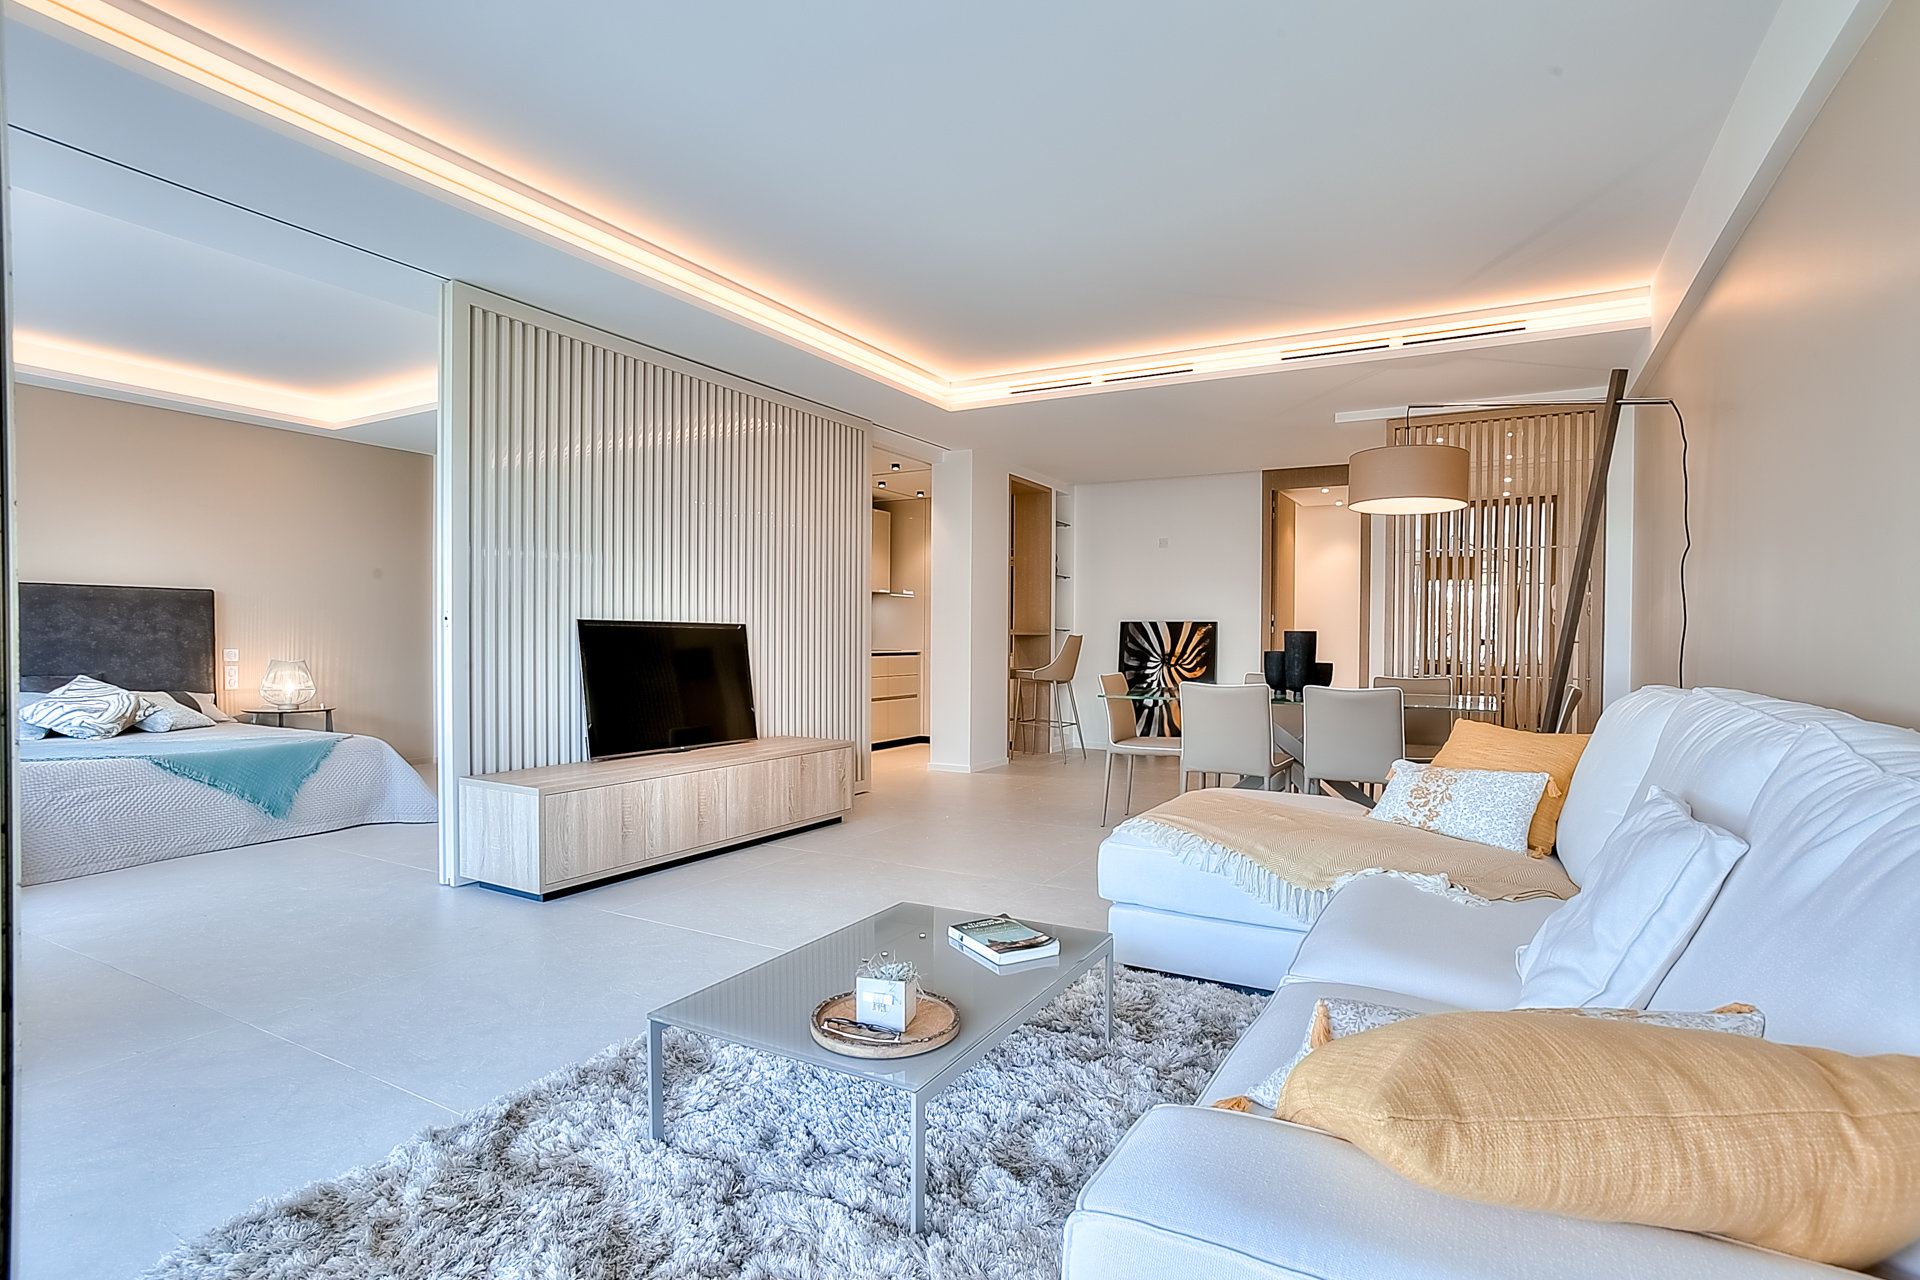 CANNES CROISETTE 4 ROOM APARTMENT FOR SALE